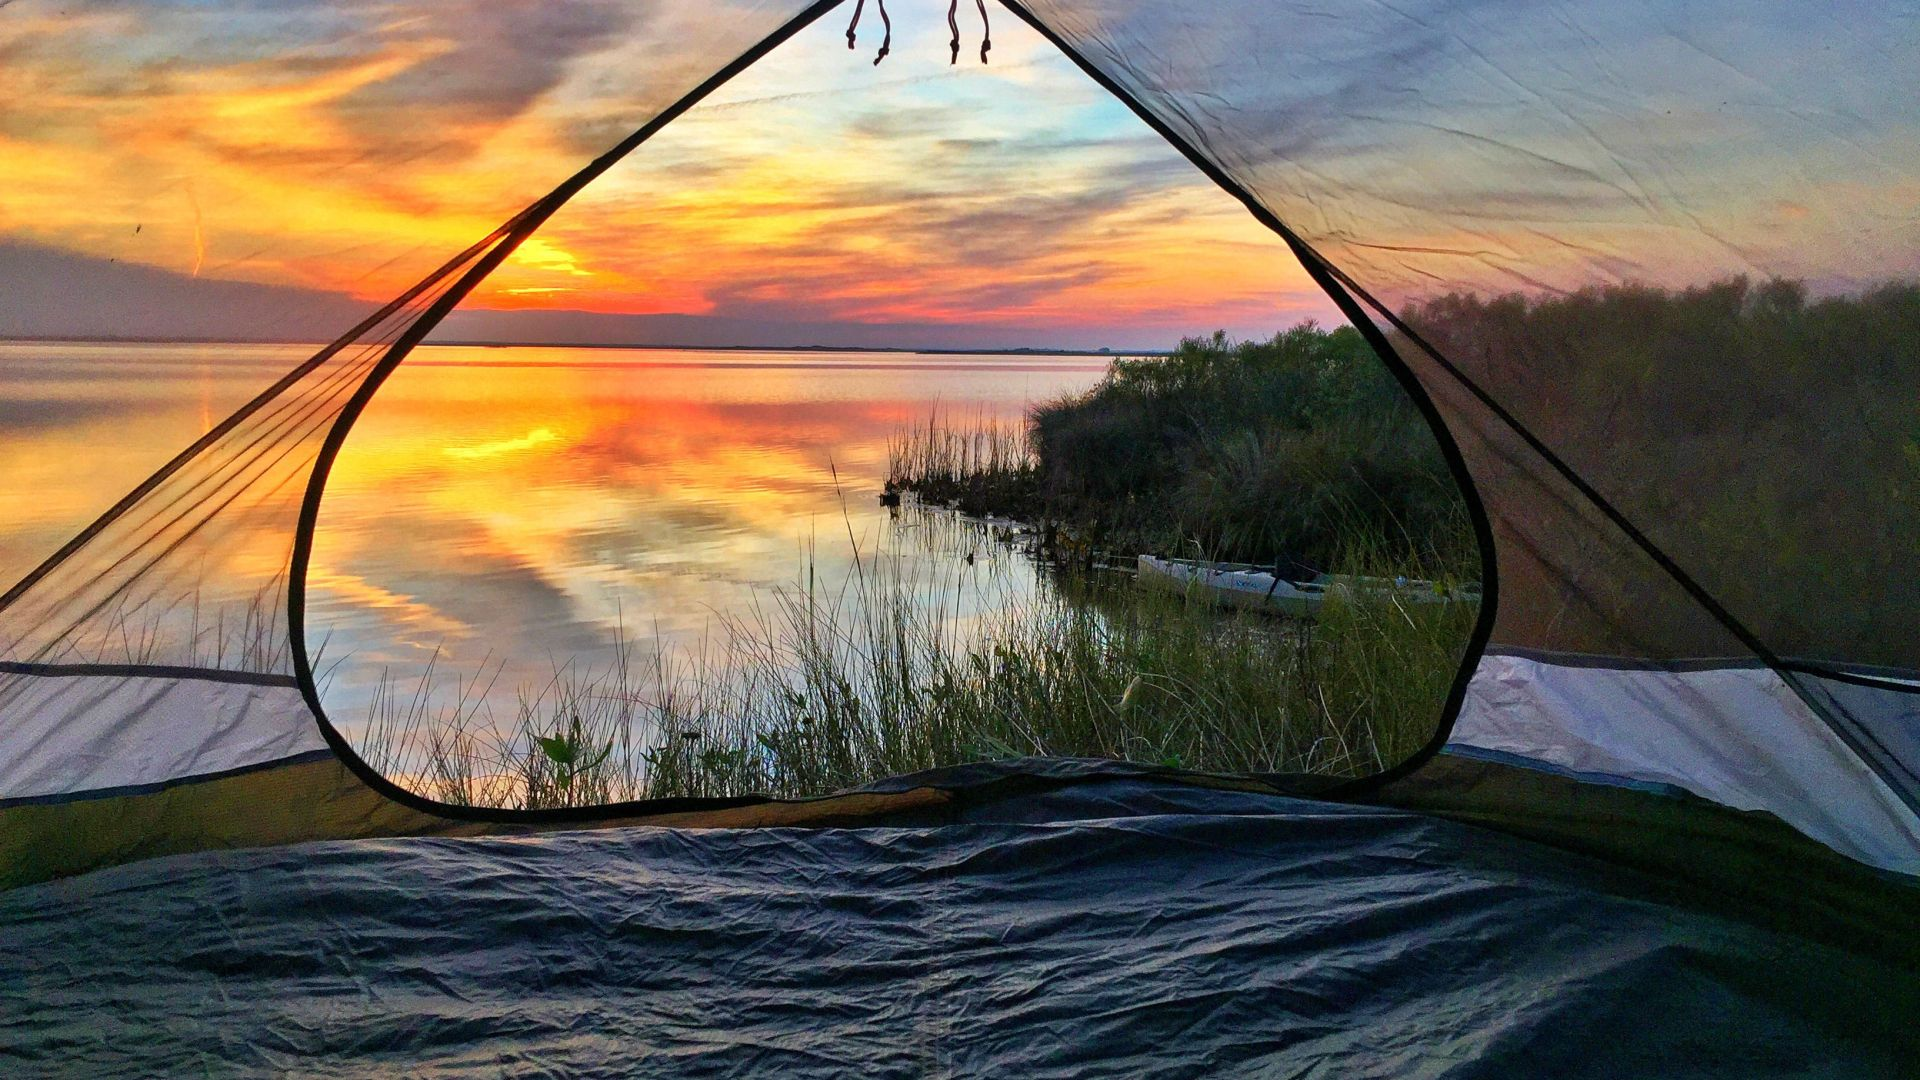 Best 53 Campground Backgrounds on HipWallpaper Campground 1920x1080